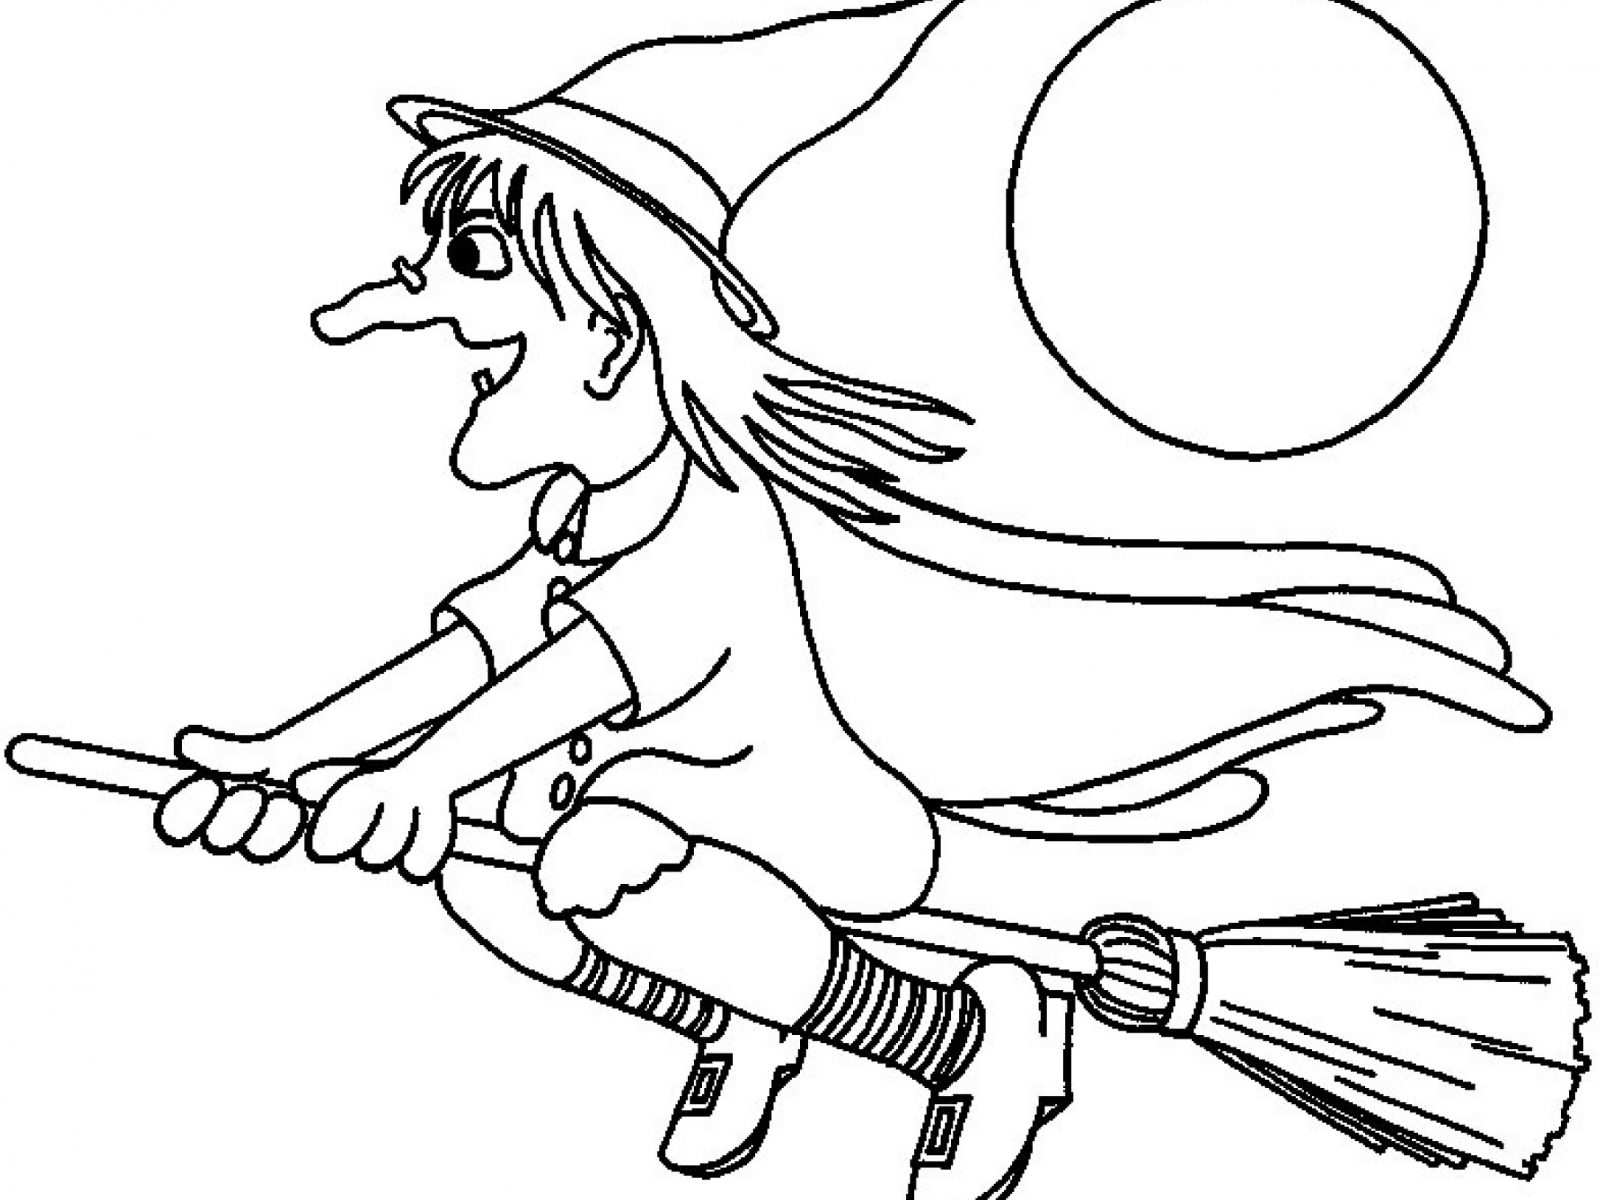 wicked witch of the west coloring pages wicked witch drawing at getdrawings free download of west witch the pages coloring wicked